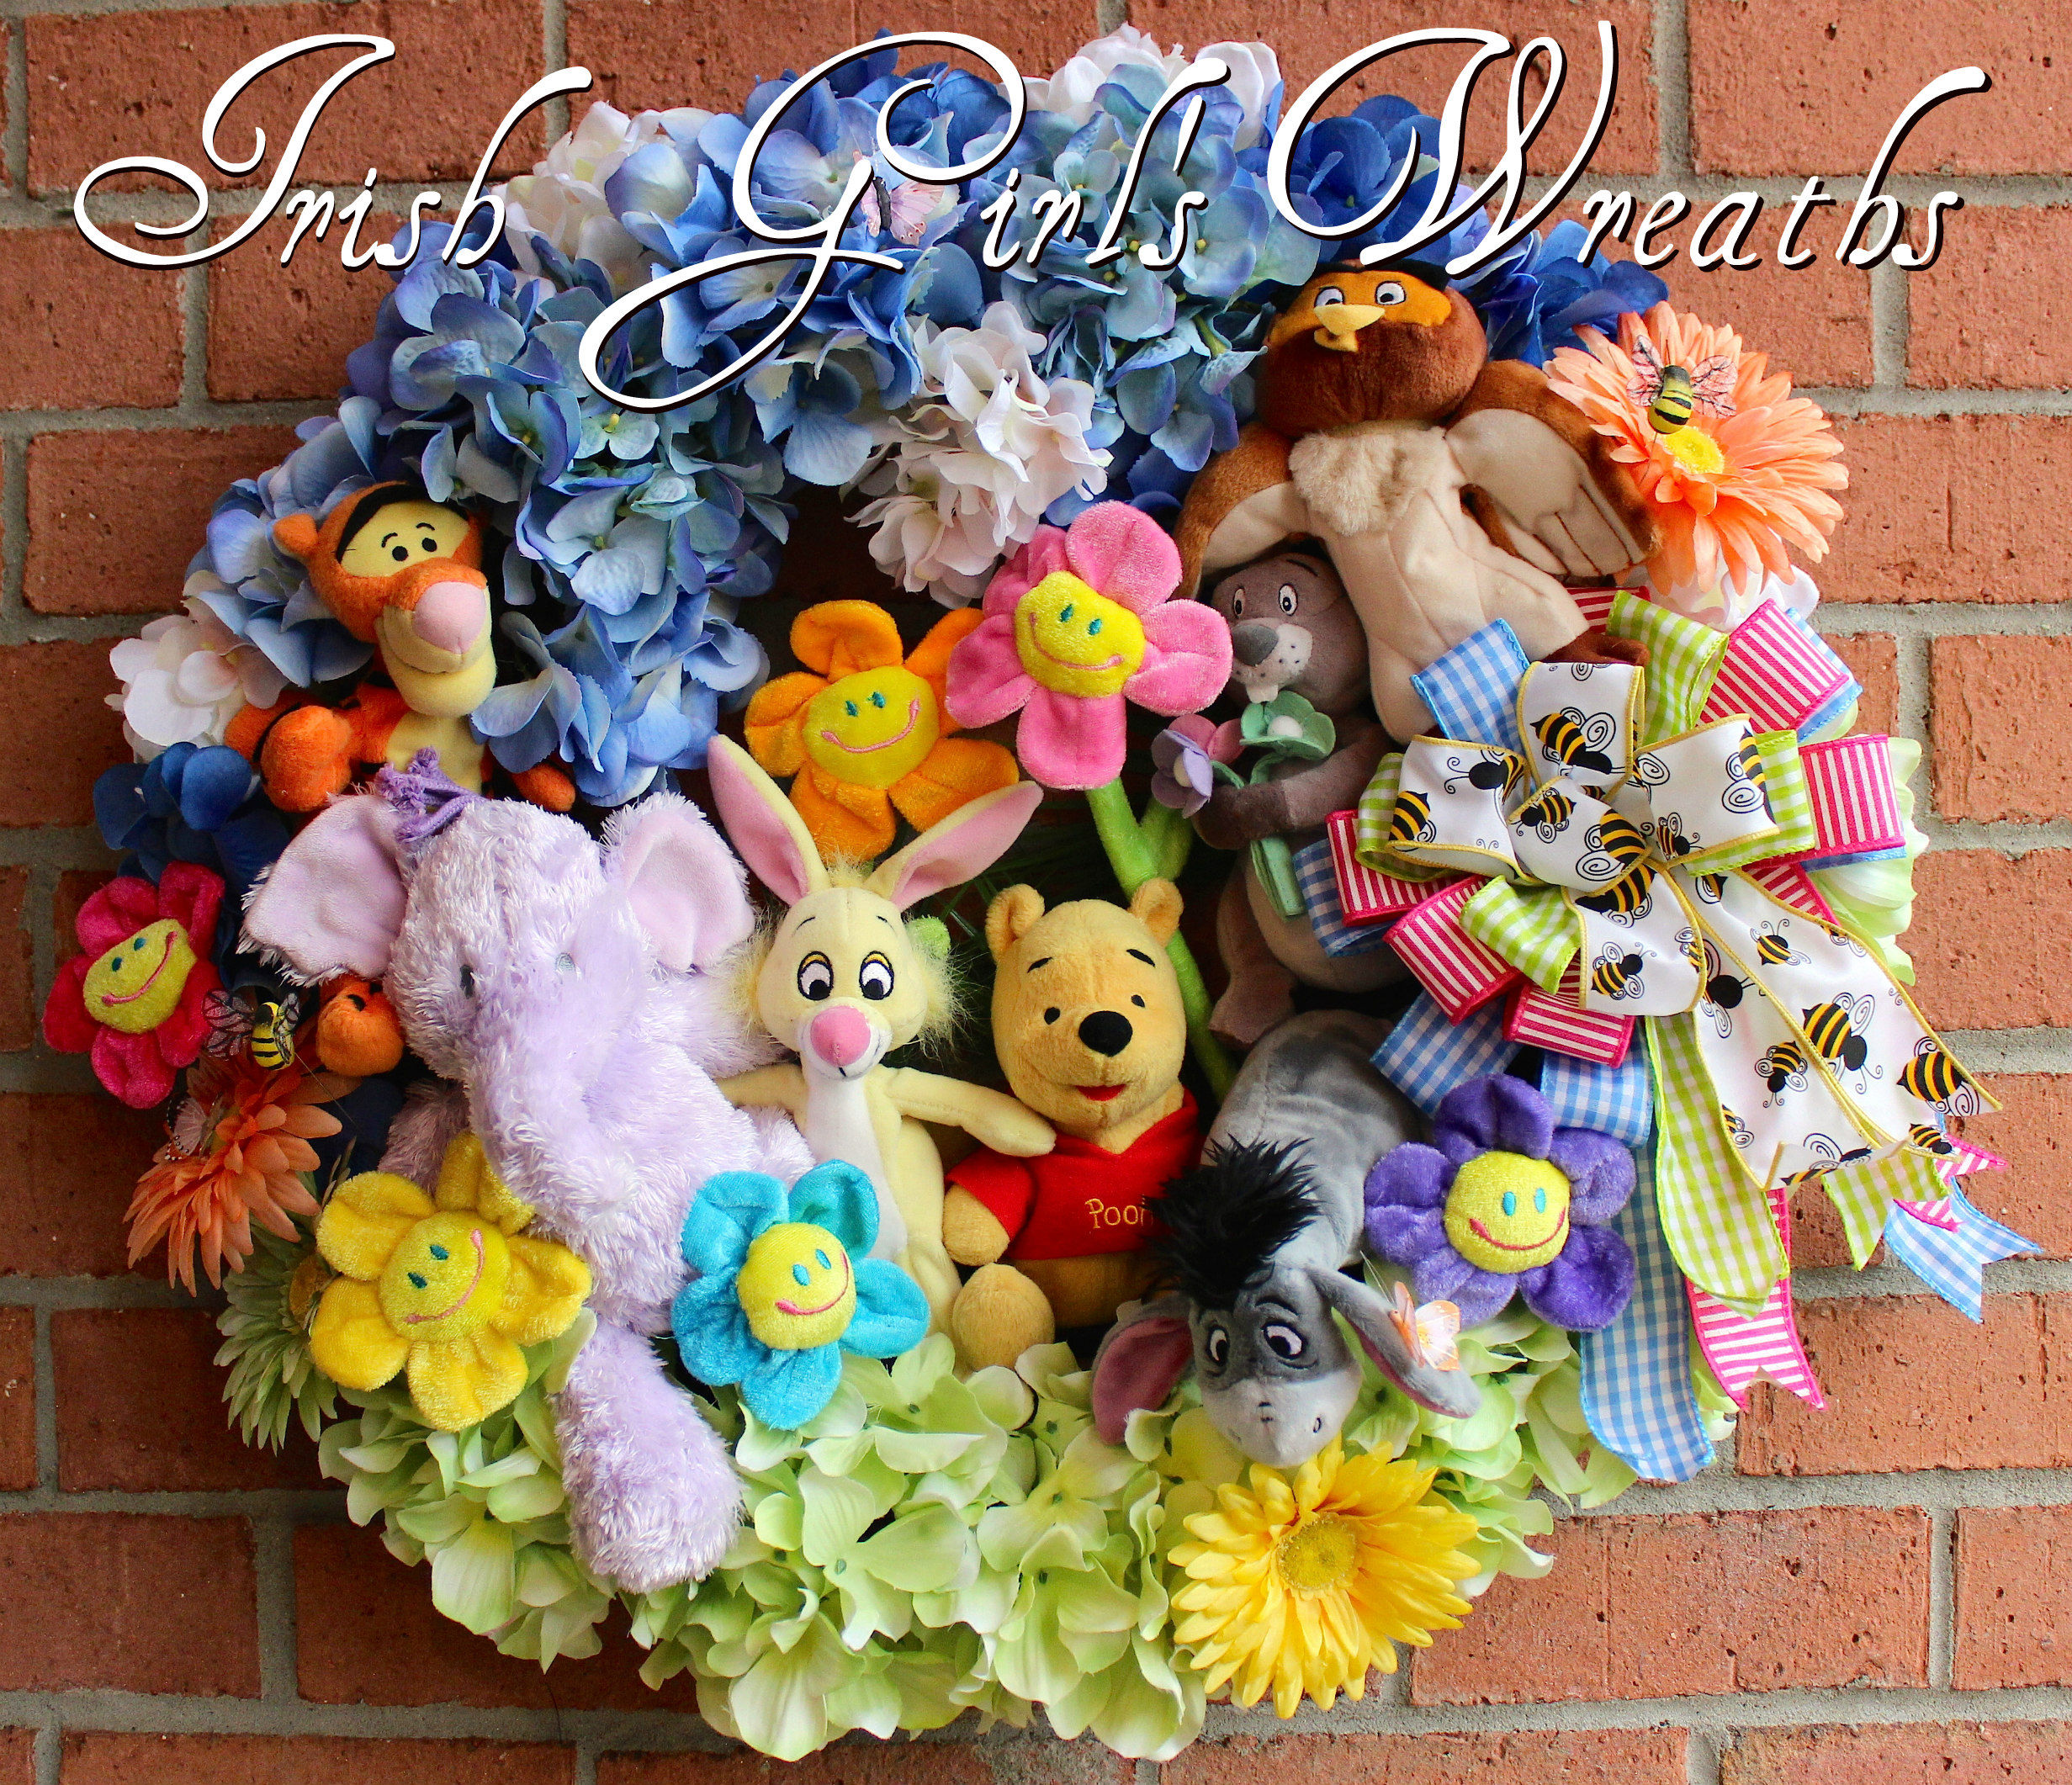 Winnie the Pooh and Friends Wreath, Custom for Joan